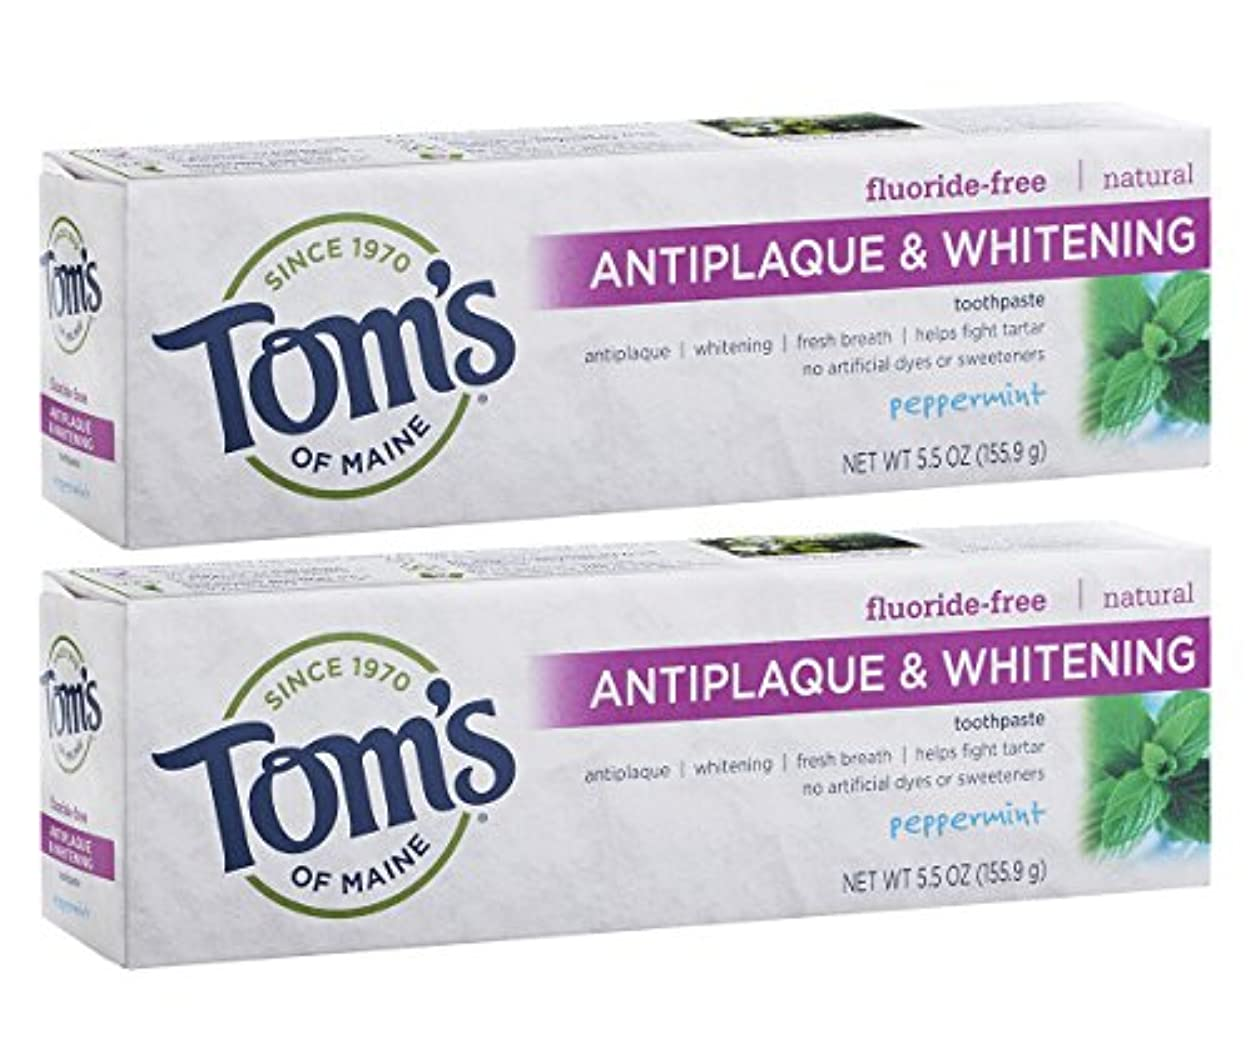 災難適切に確かなTom's of Maine Antiplaque And Whitening Fluoride-Free Toothpaste, Peppermint, 5.5-Ounce by Tom's of Maine